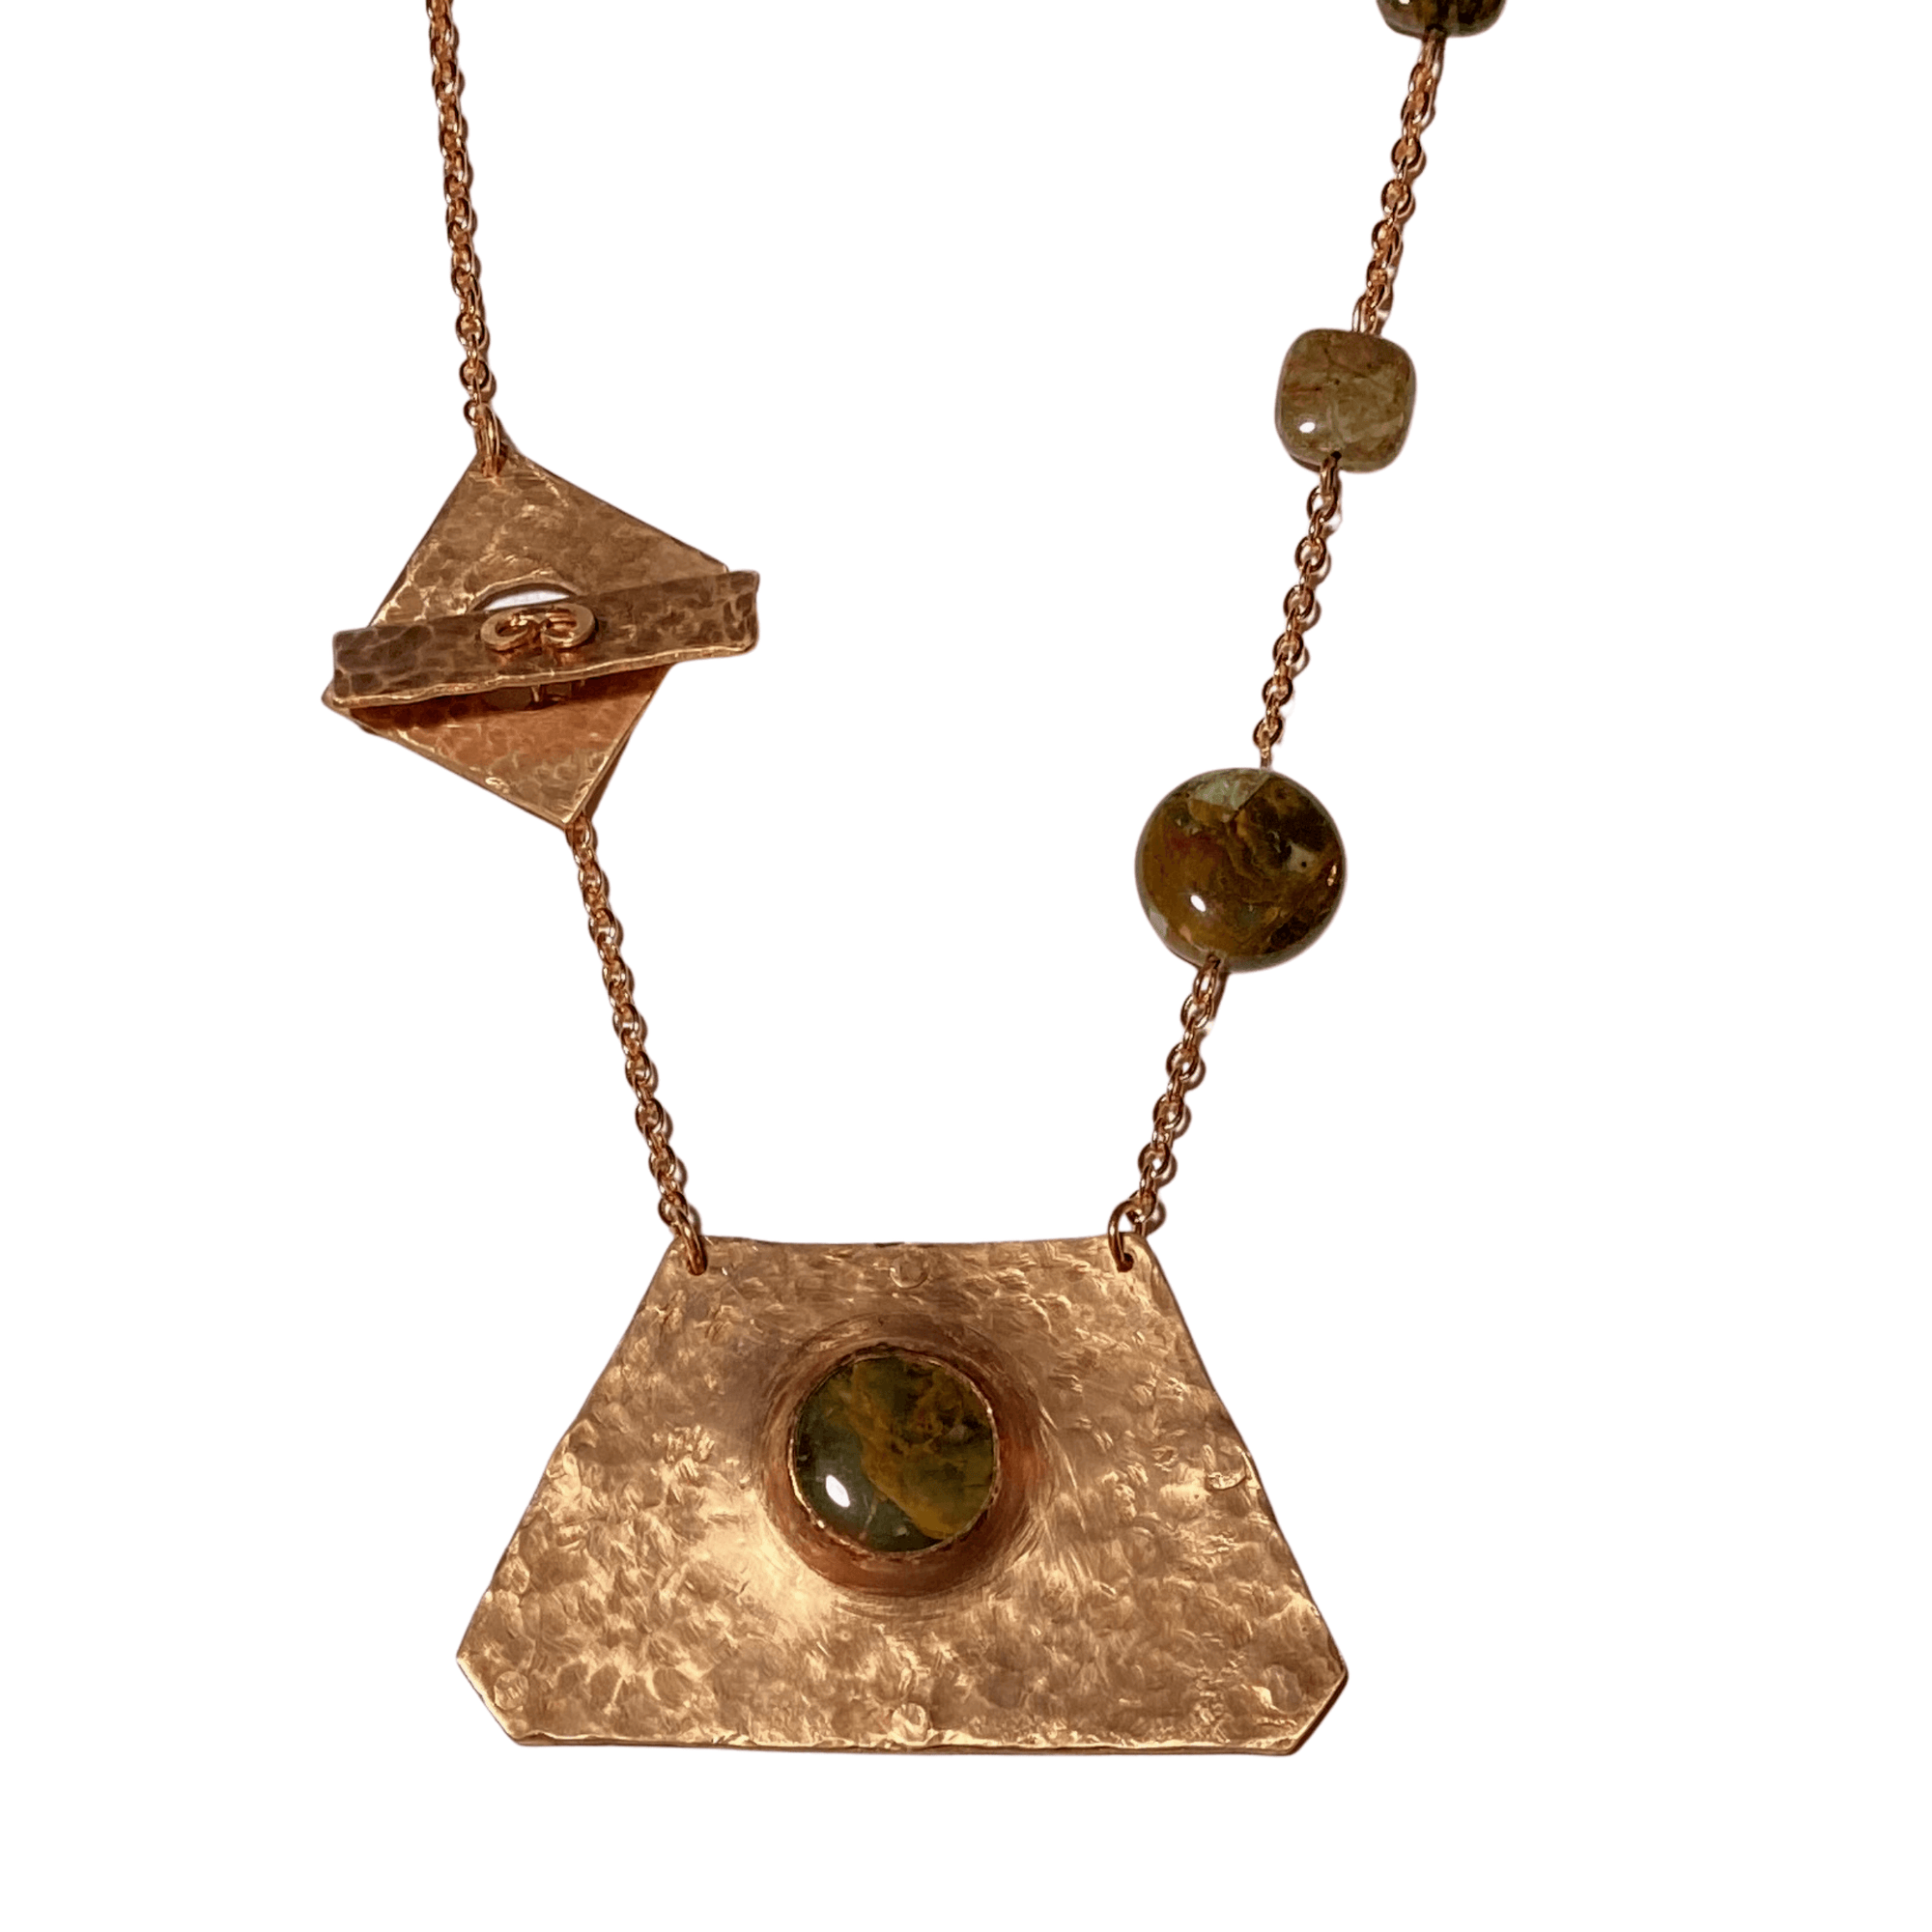 Green Opal, Copper Metal Handcrafted Pendant Necklace With Copper Chain. This is truly a one-of-a-kind, Unique Necklace.